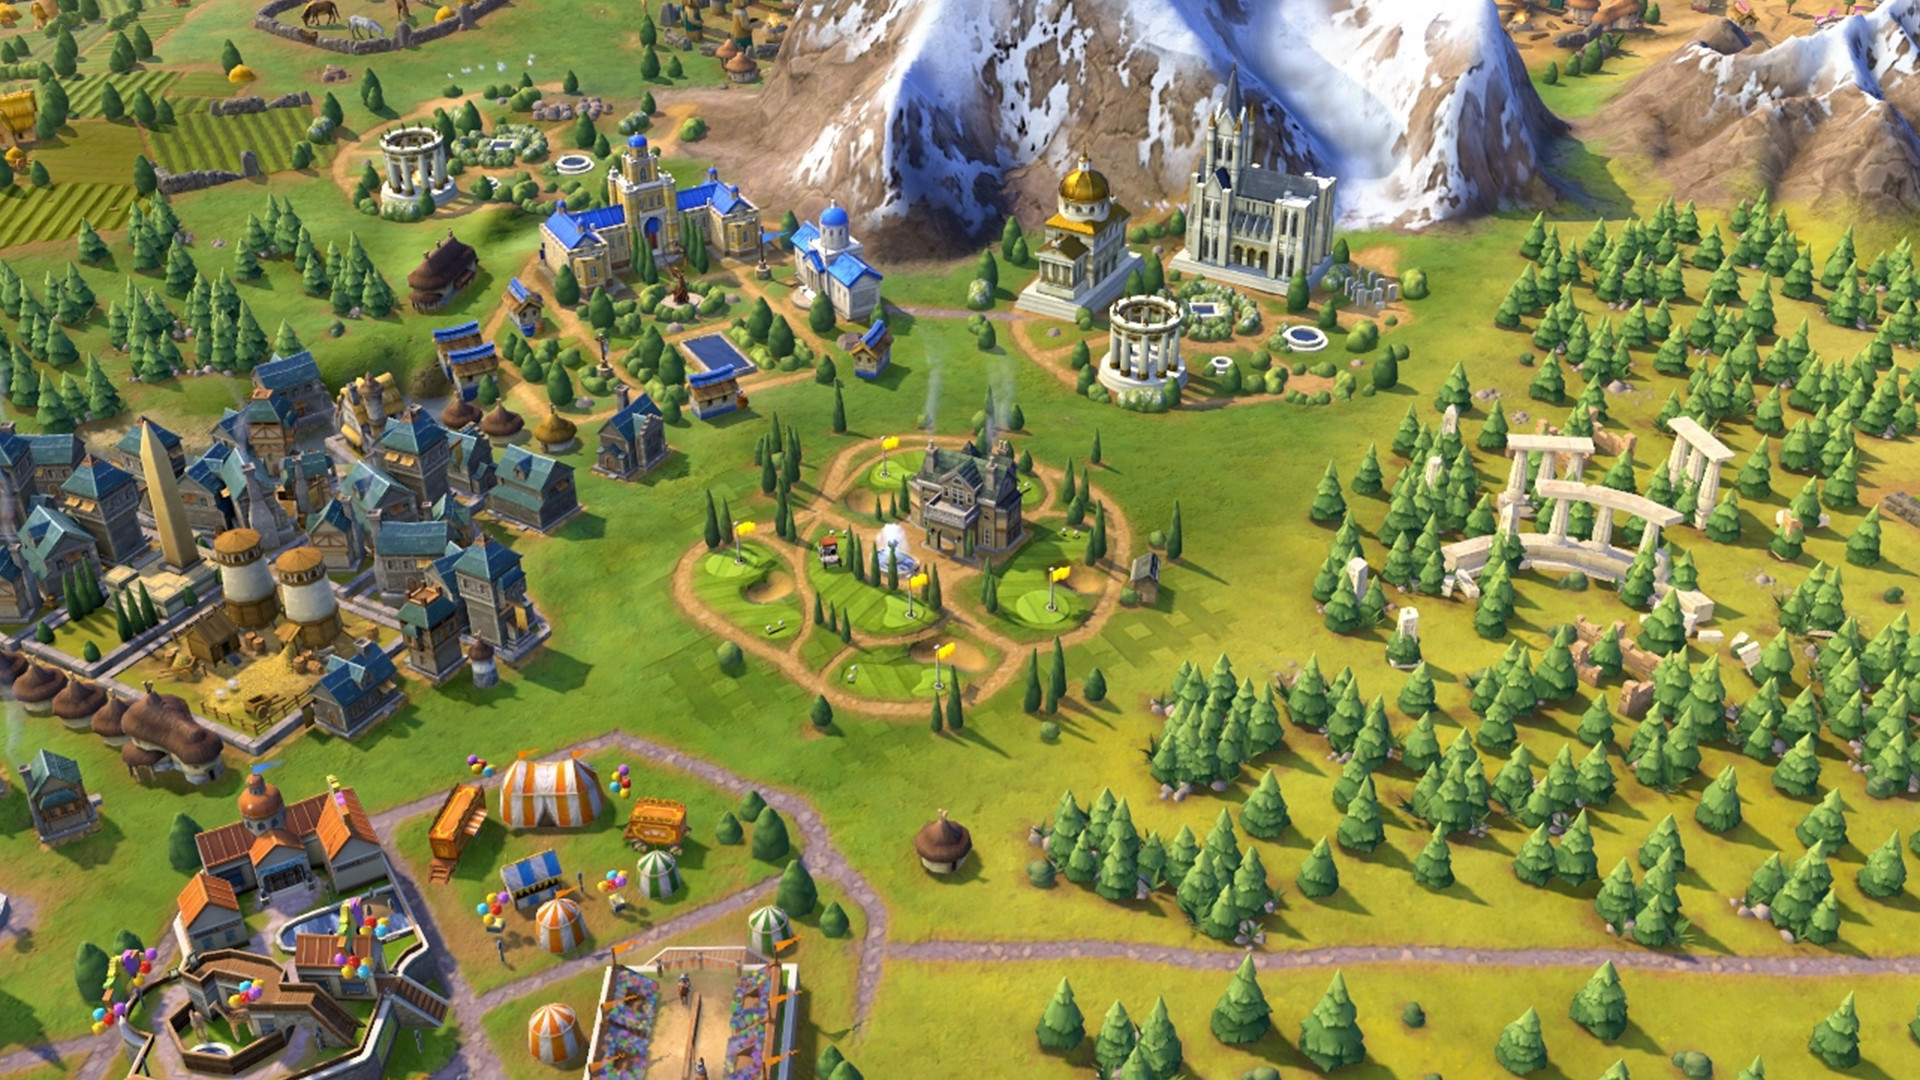 Robert the Bruce, Highlander and golf courses: it's Scotland in Civilization 6